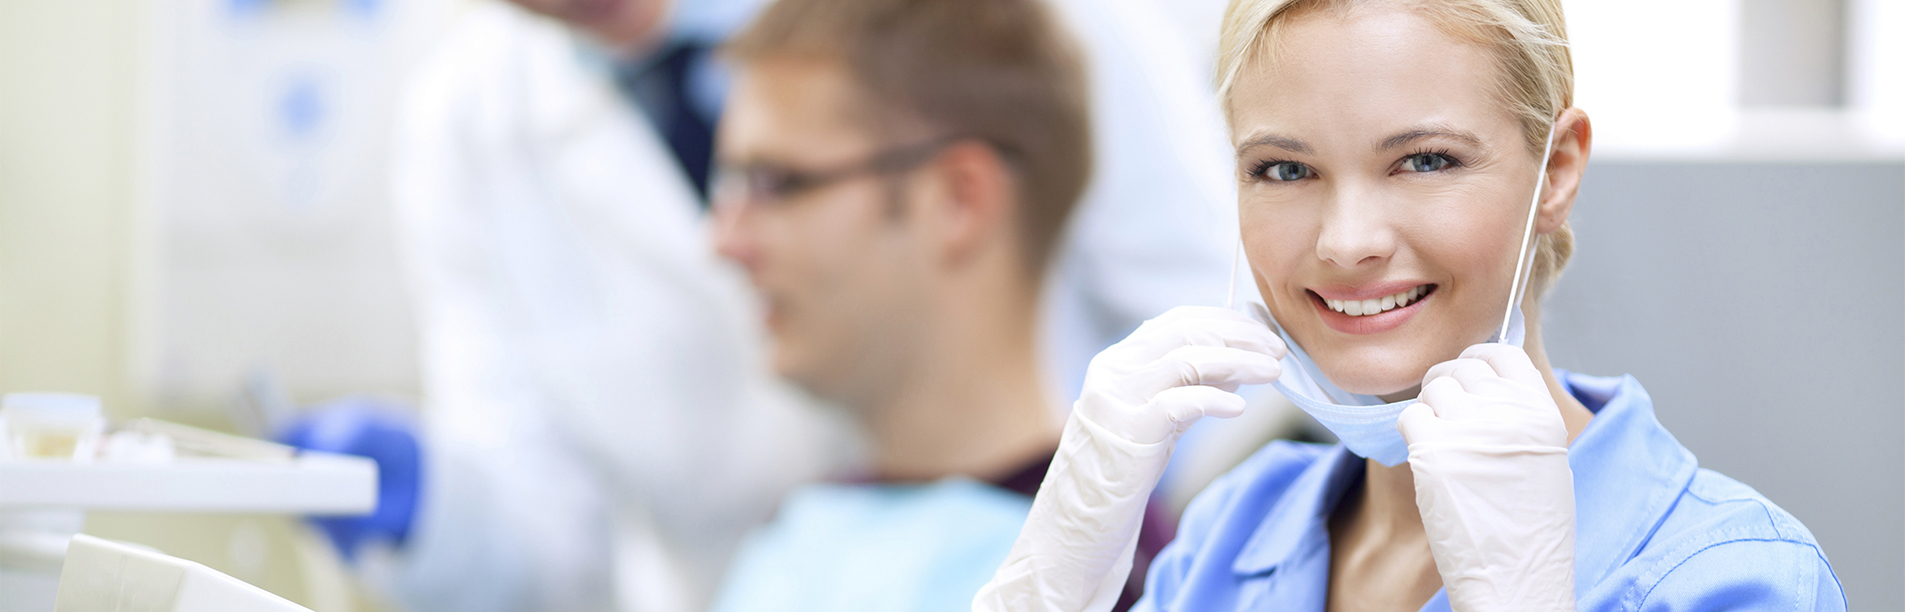 Portrait of a smiling female dentist looking at camera,in background patient having dental treatment